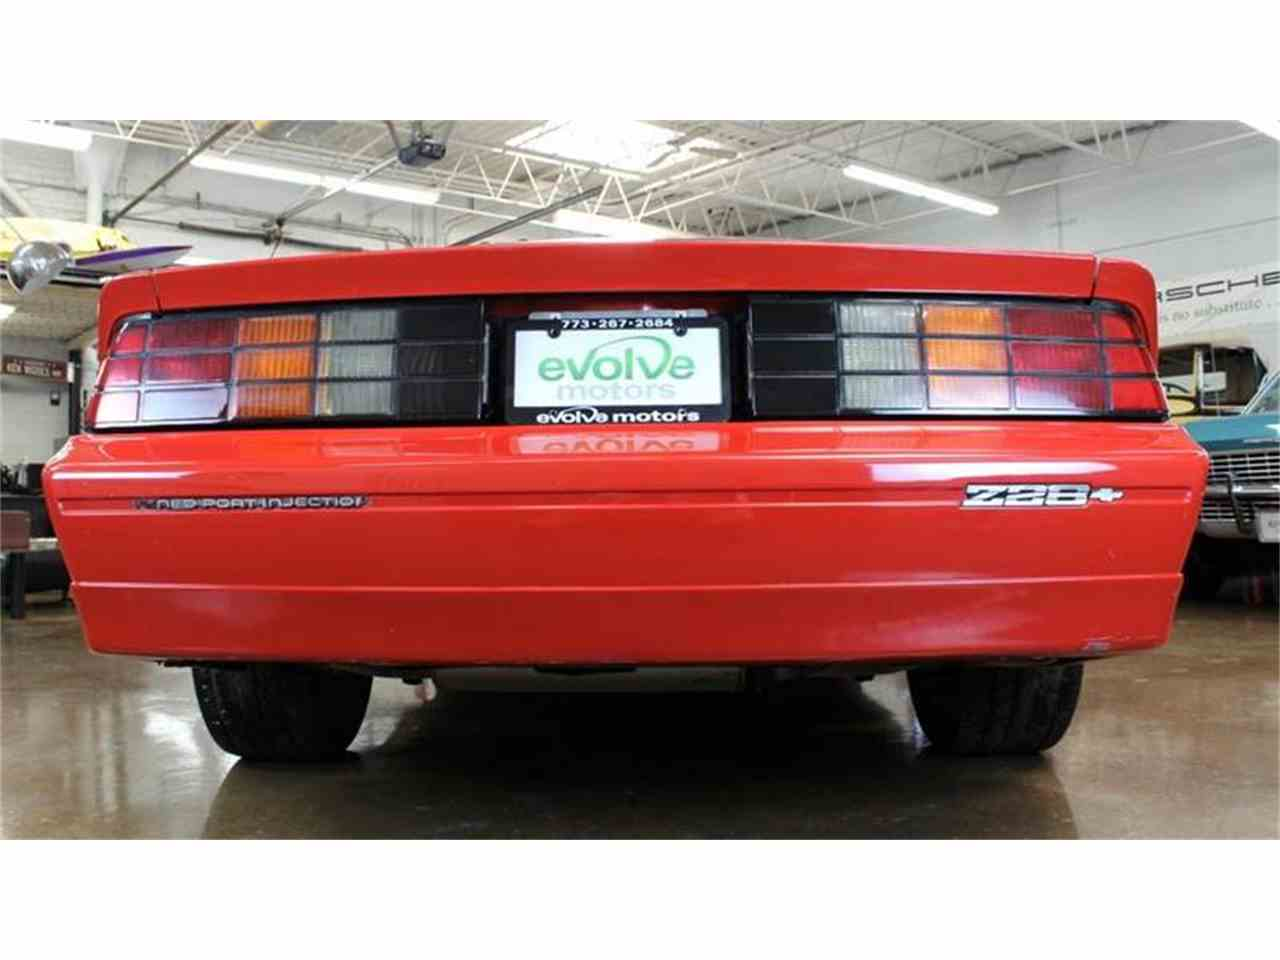 Large Picture of 1985 Chevrolet Camaro located in Illinois - $13,900.00 - MH2P